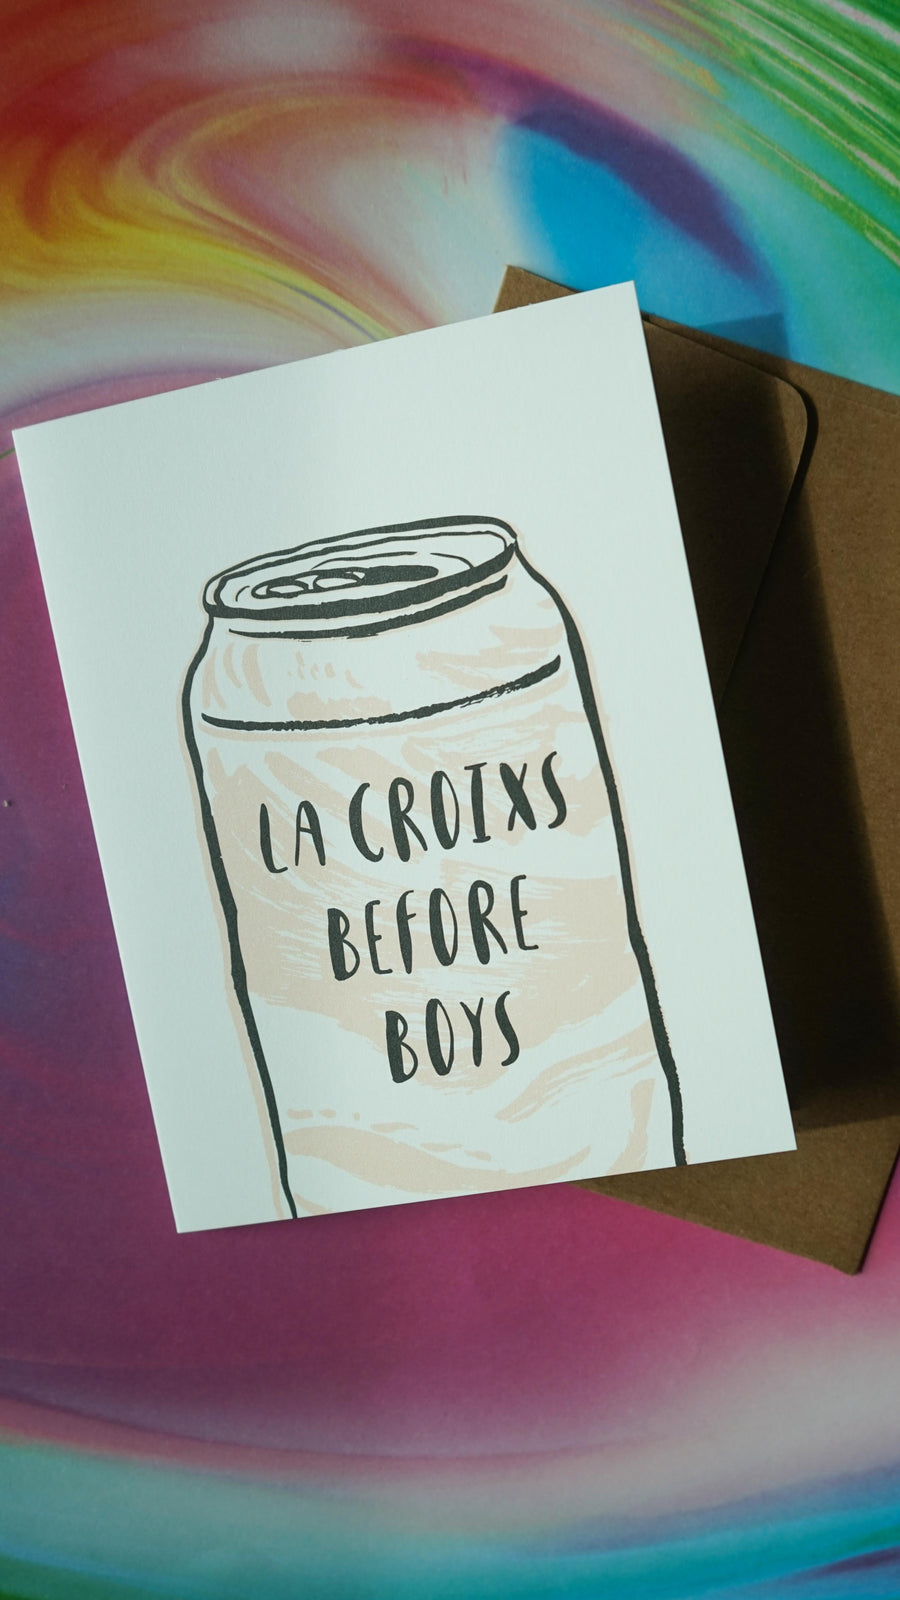 La Croixs Before Boys Card